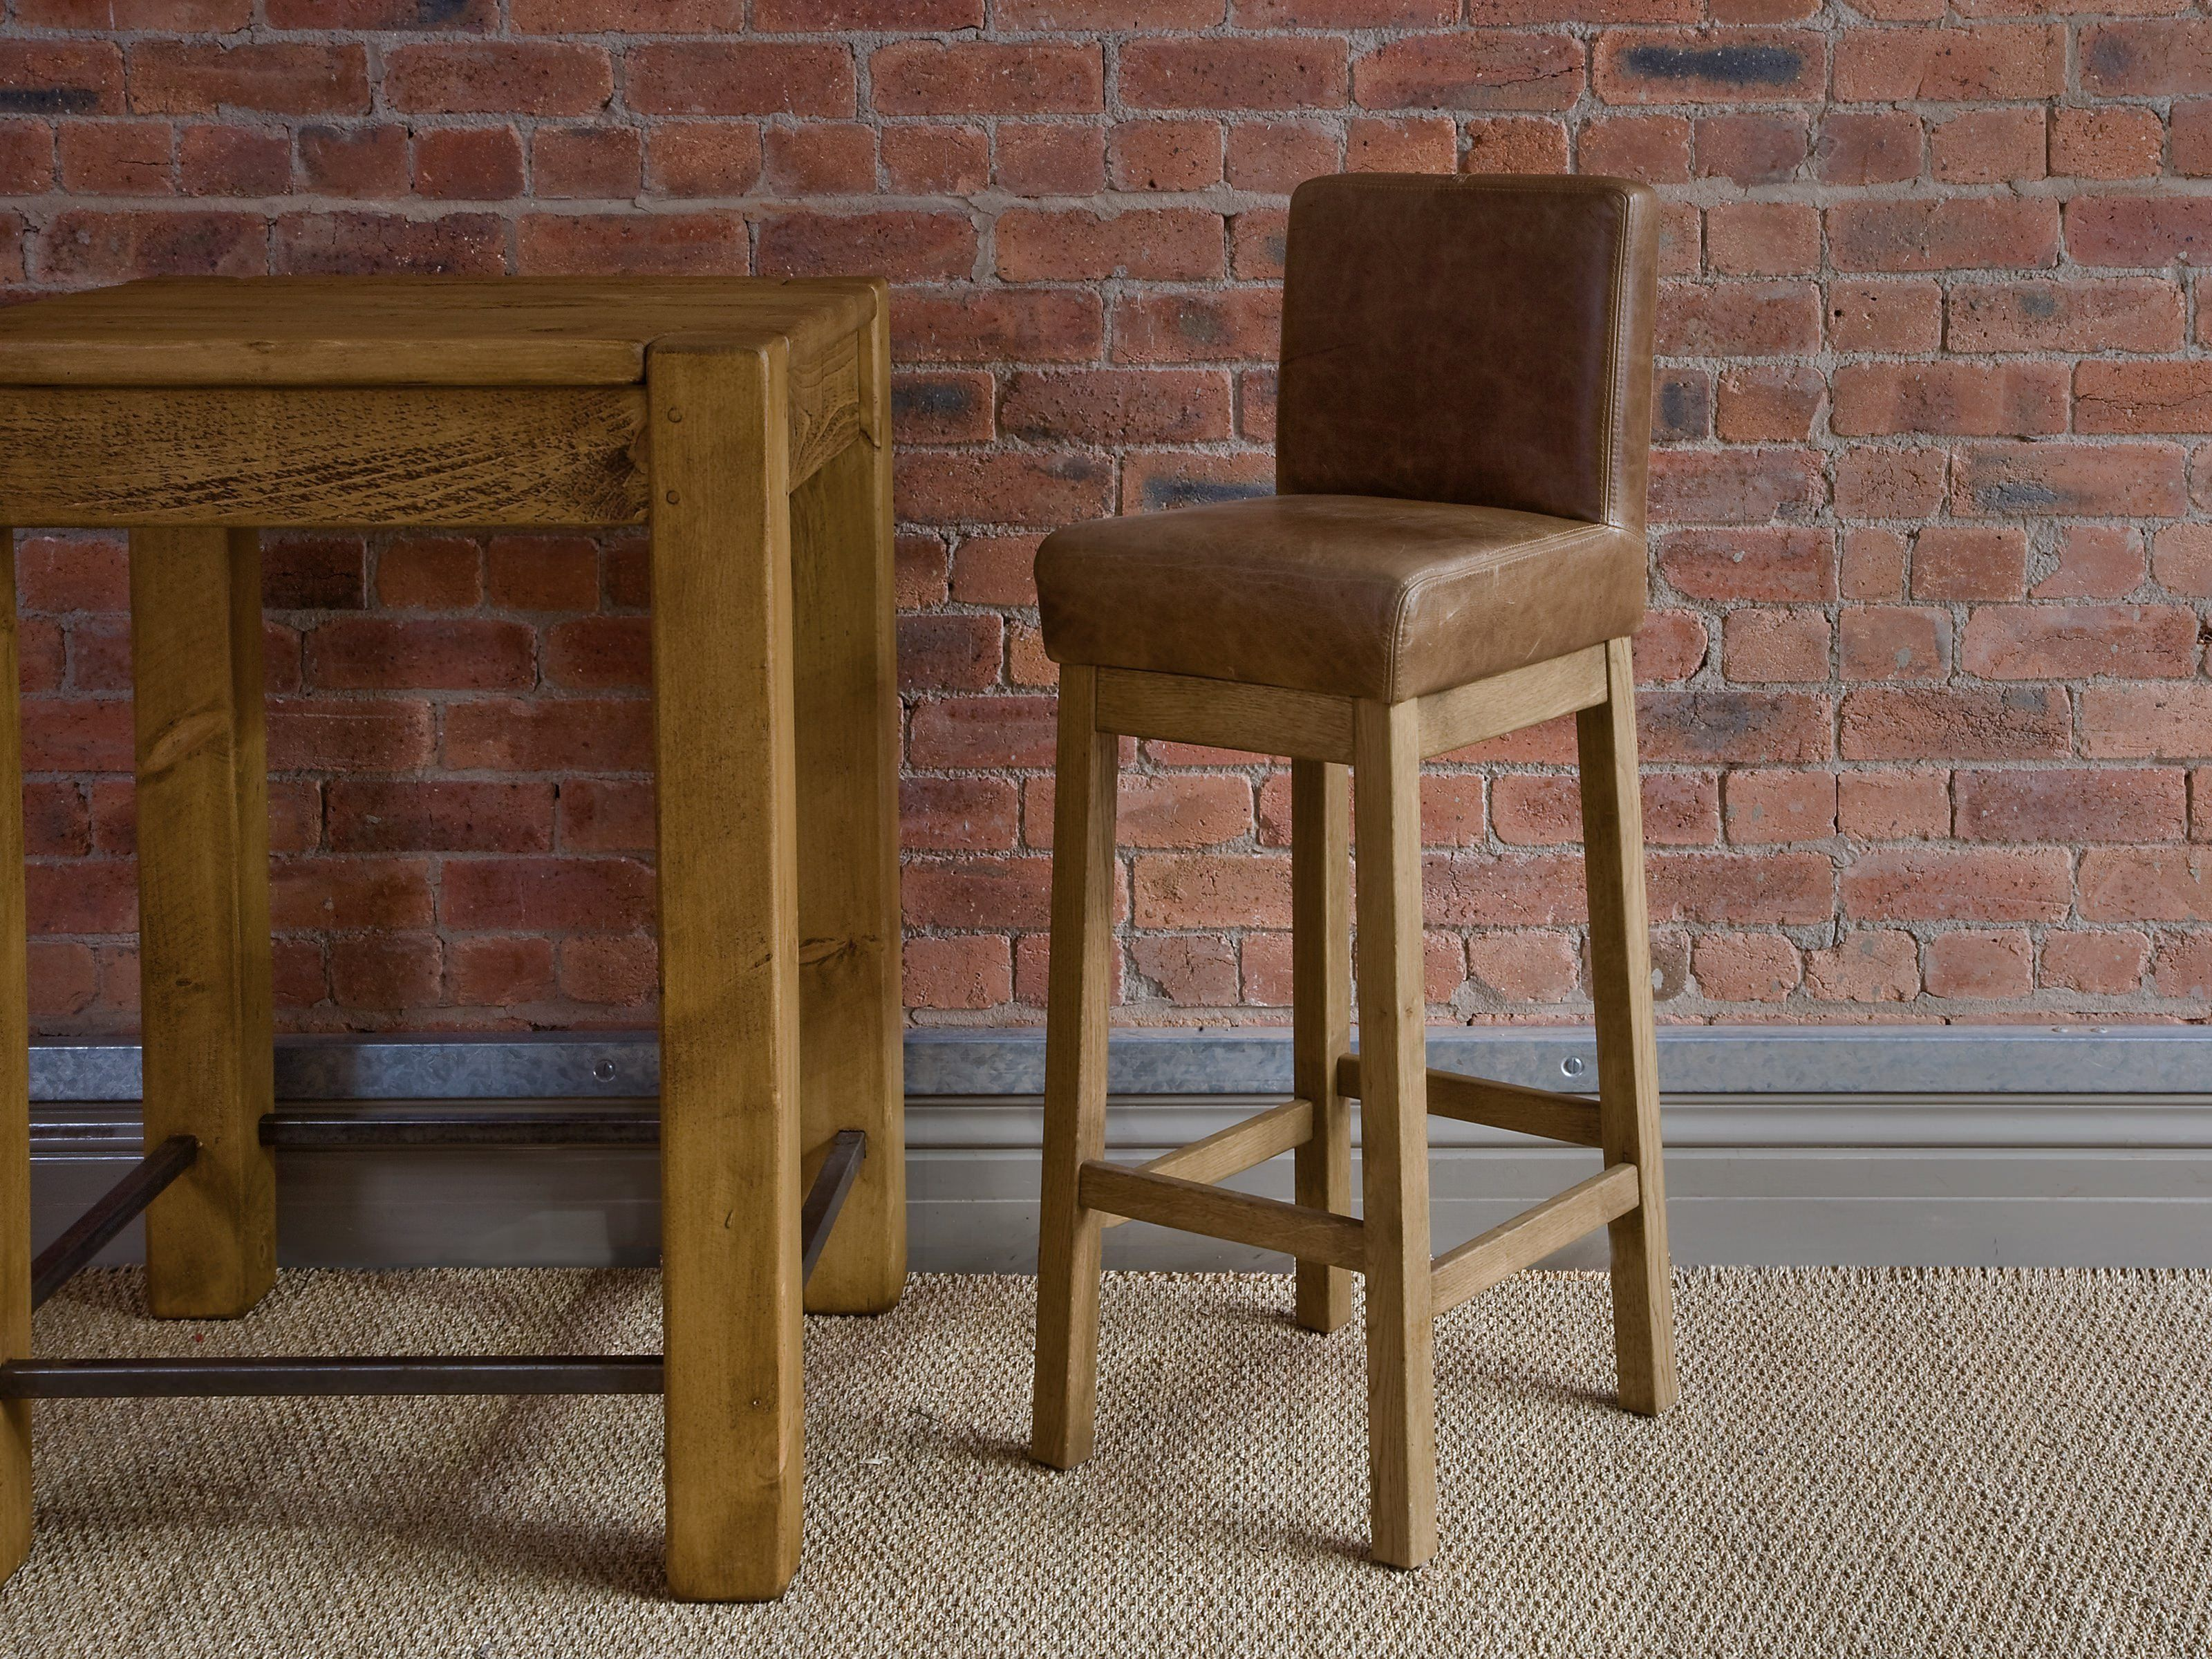 Furniture Rustic Brown Suede Upholstered Bar Stool With Varnished Wooden Legs Combined Exposed Red Bricks Wall